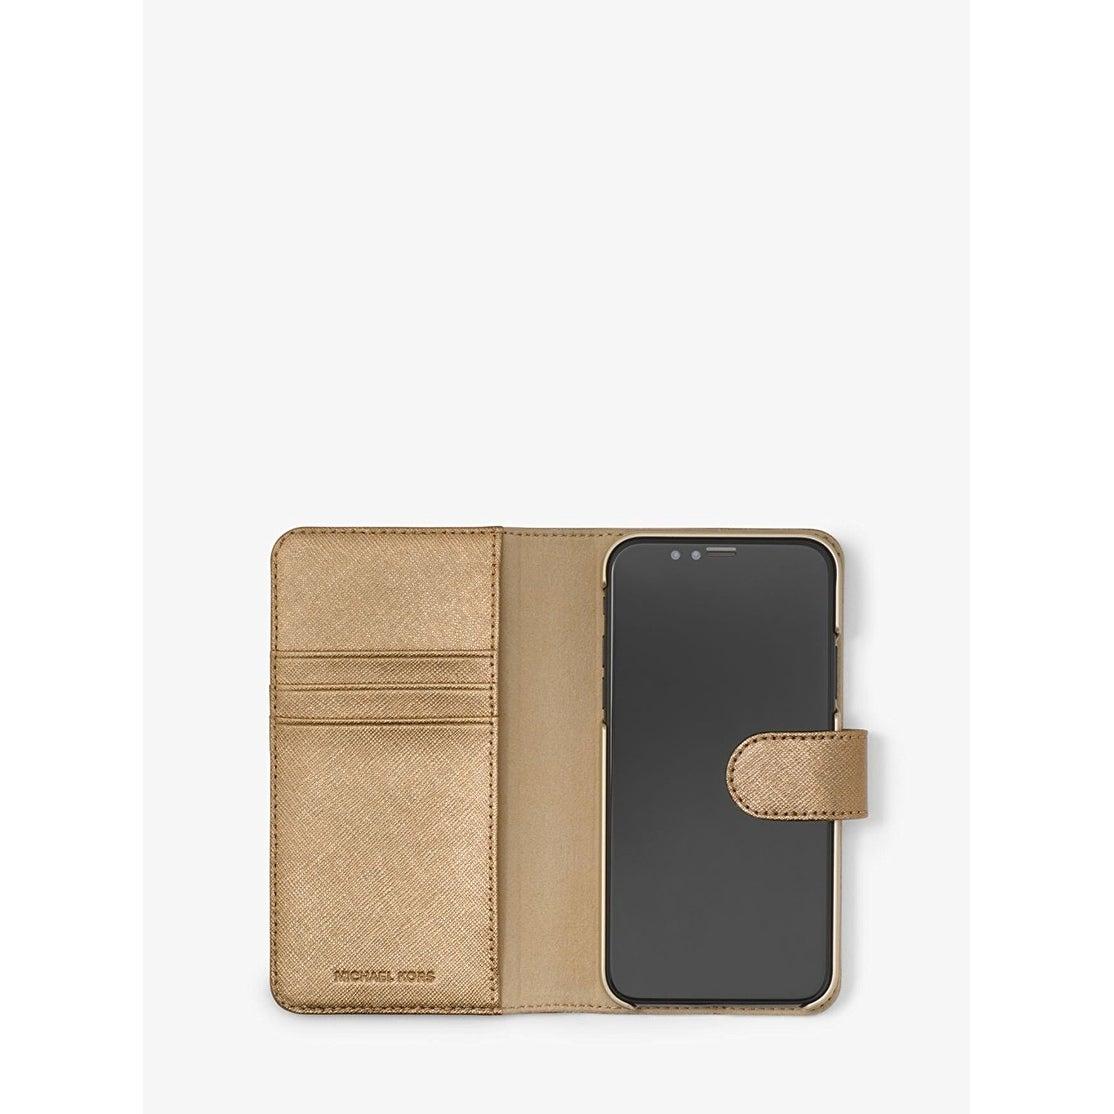 cb1d9a13b055 Shop Michael Kors Metallic Saffiano Leather Folio Case For iPhone X, Pale  Gold - Free Shipping Today - Overstock - 22045618